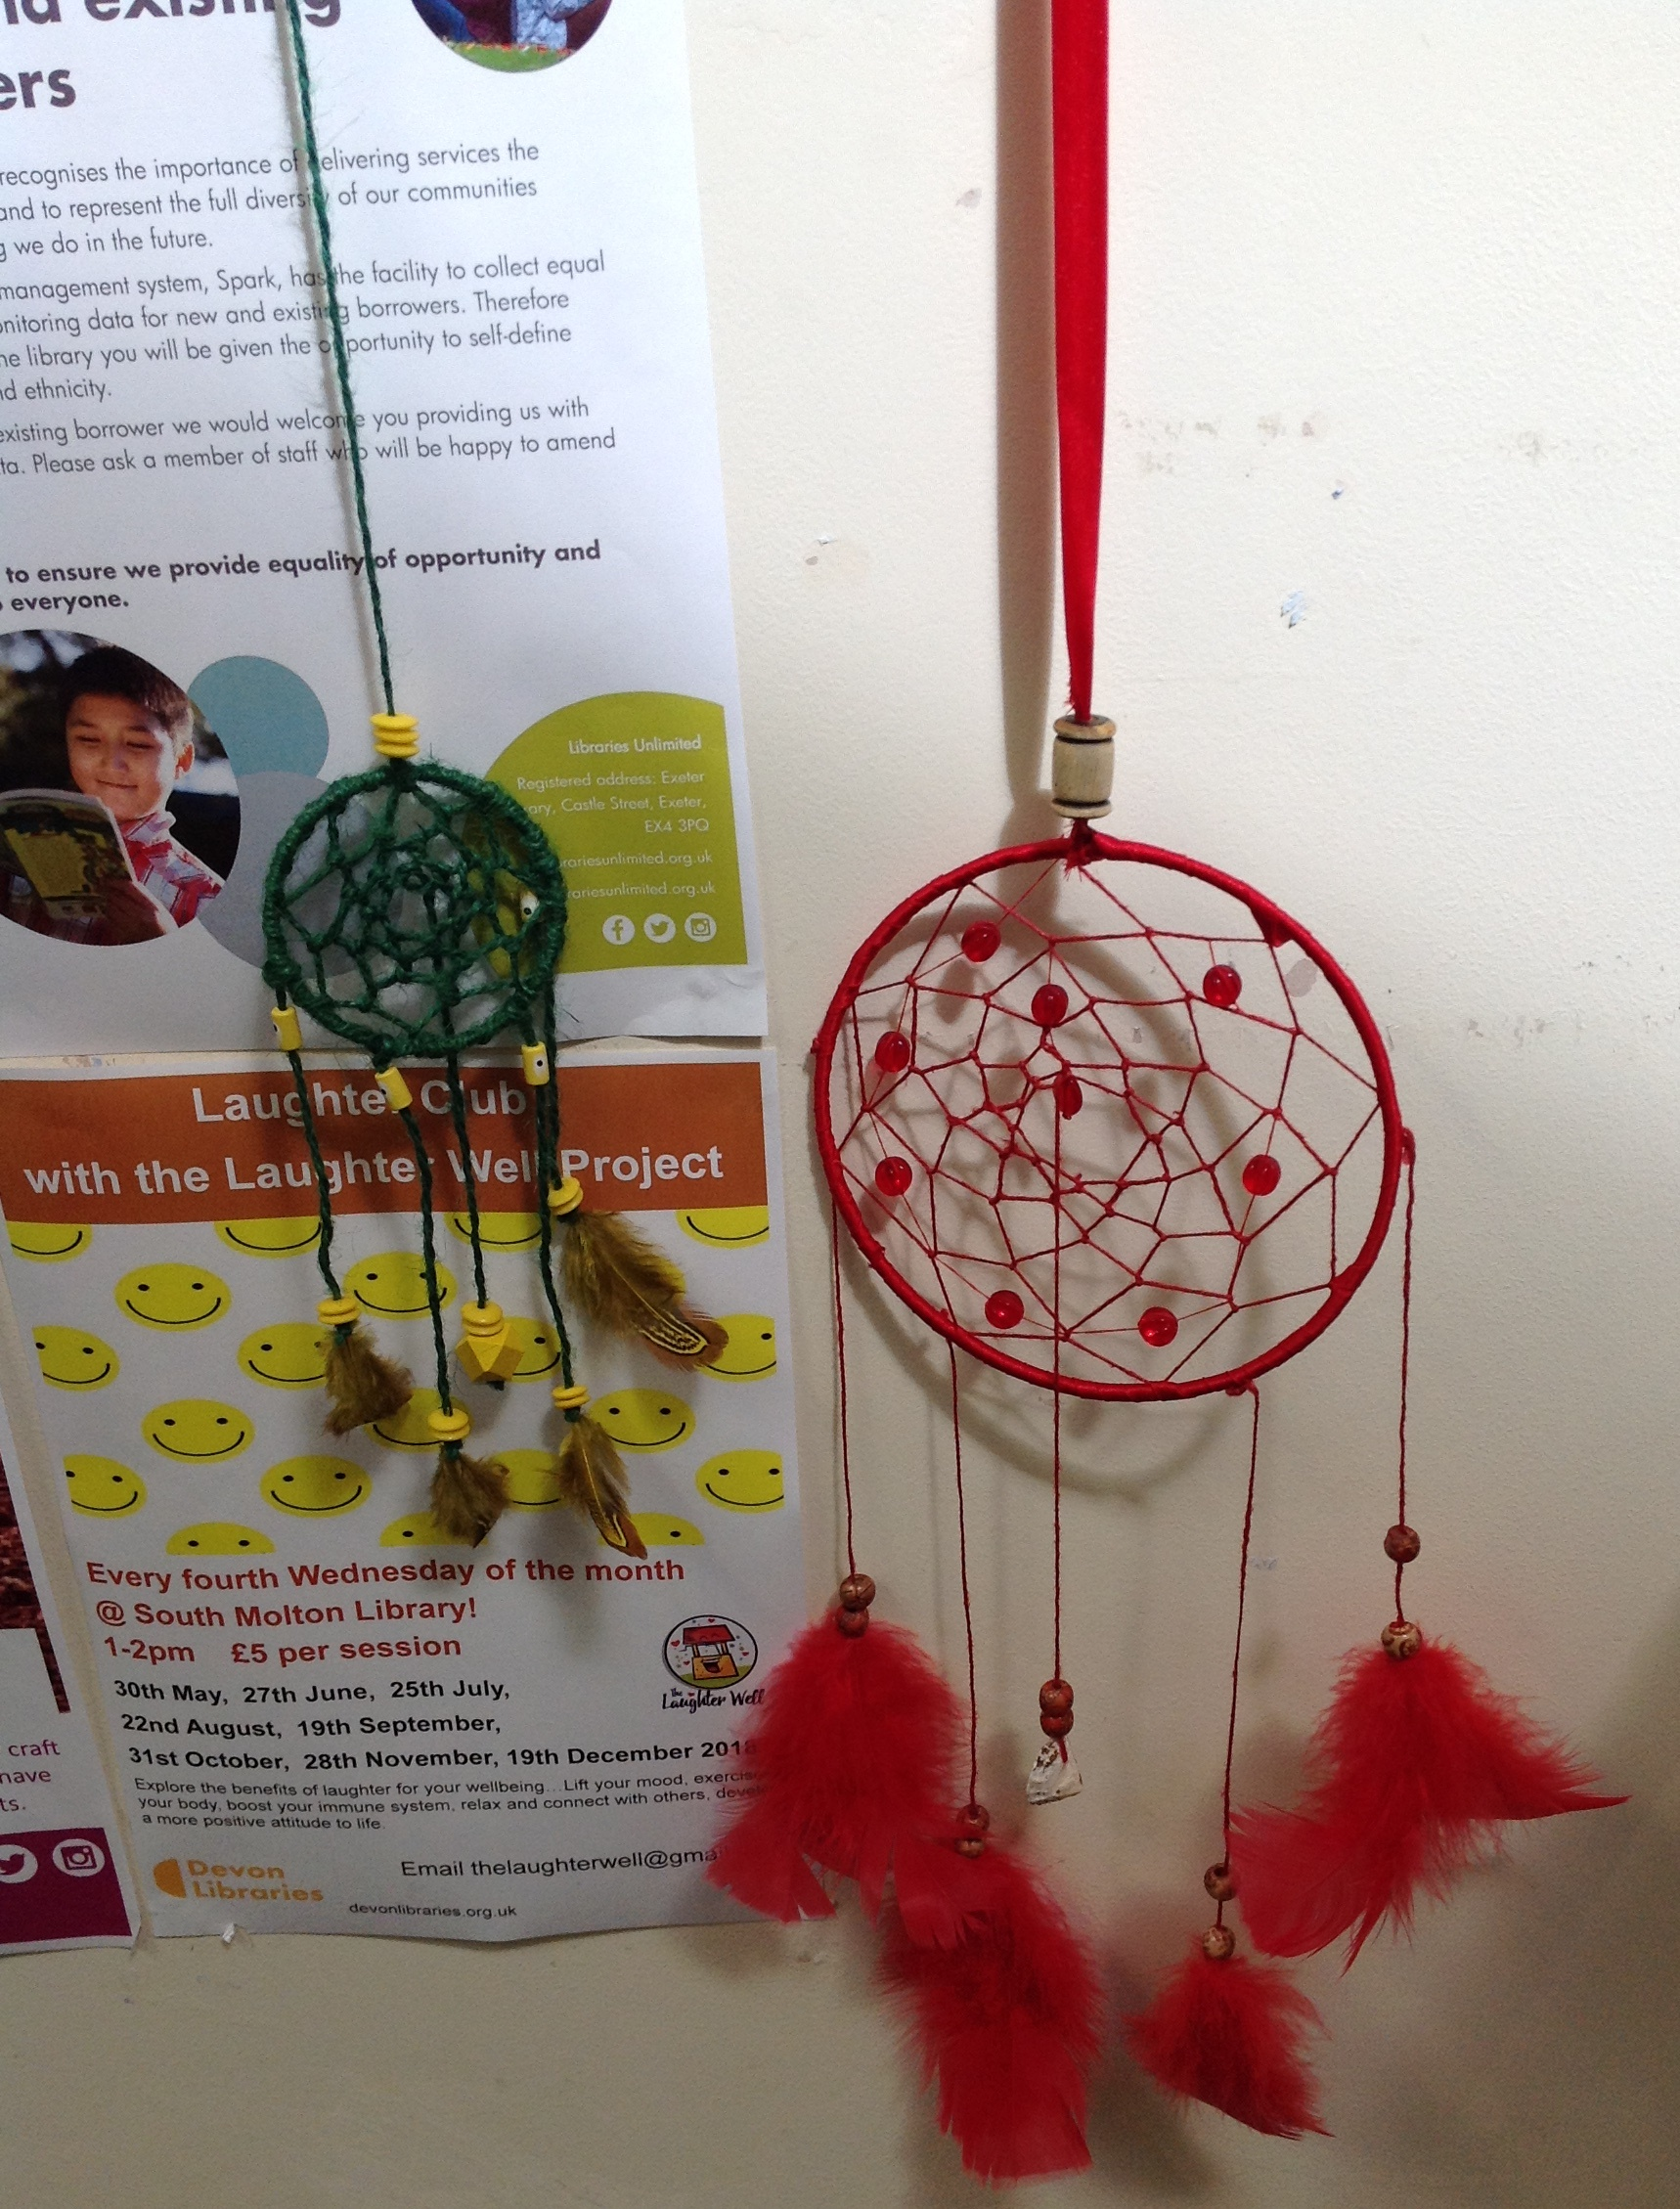 AND 14:00-16:00. Design and make your own fiendish Mischief Catcher using hoops, wool, string, beads and feathers. Perfect to keep children 7+ entertained, please book with the library. £5 to pay.